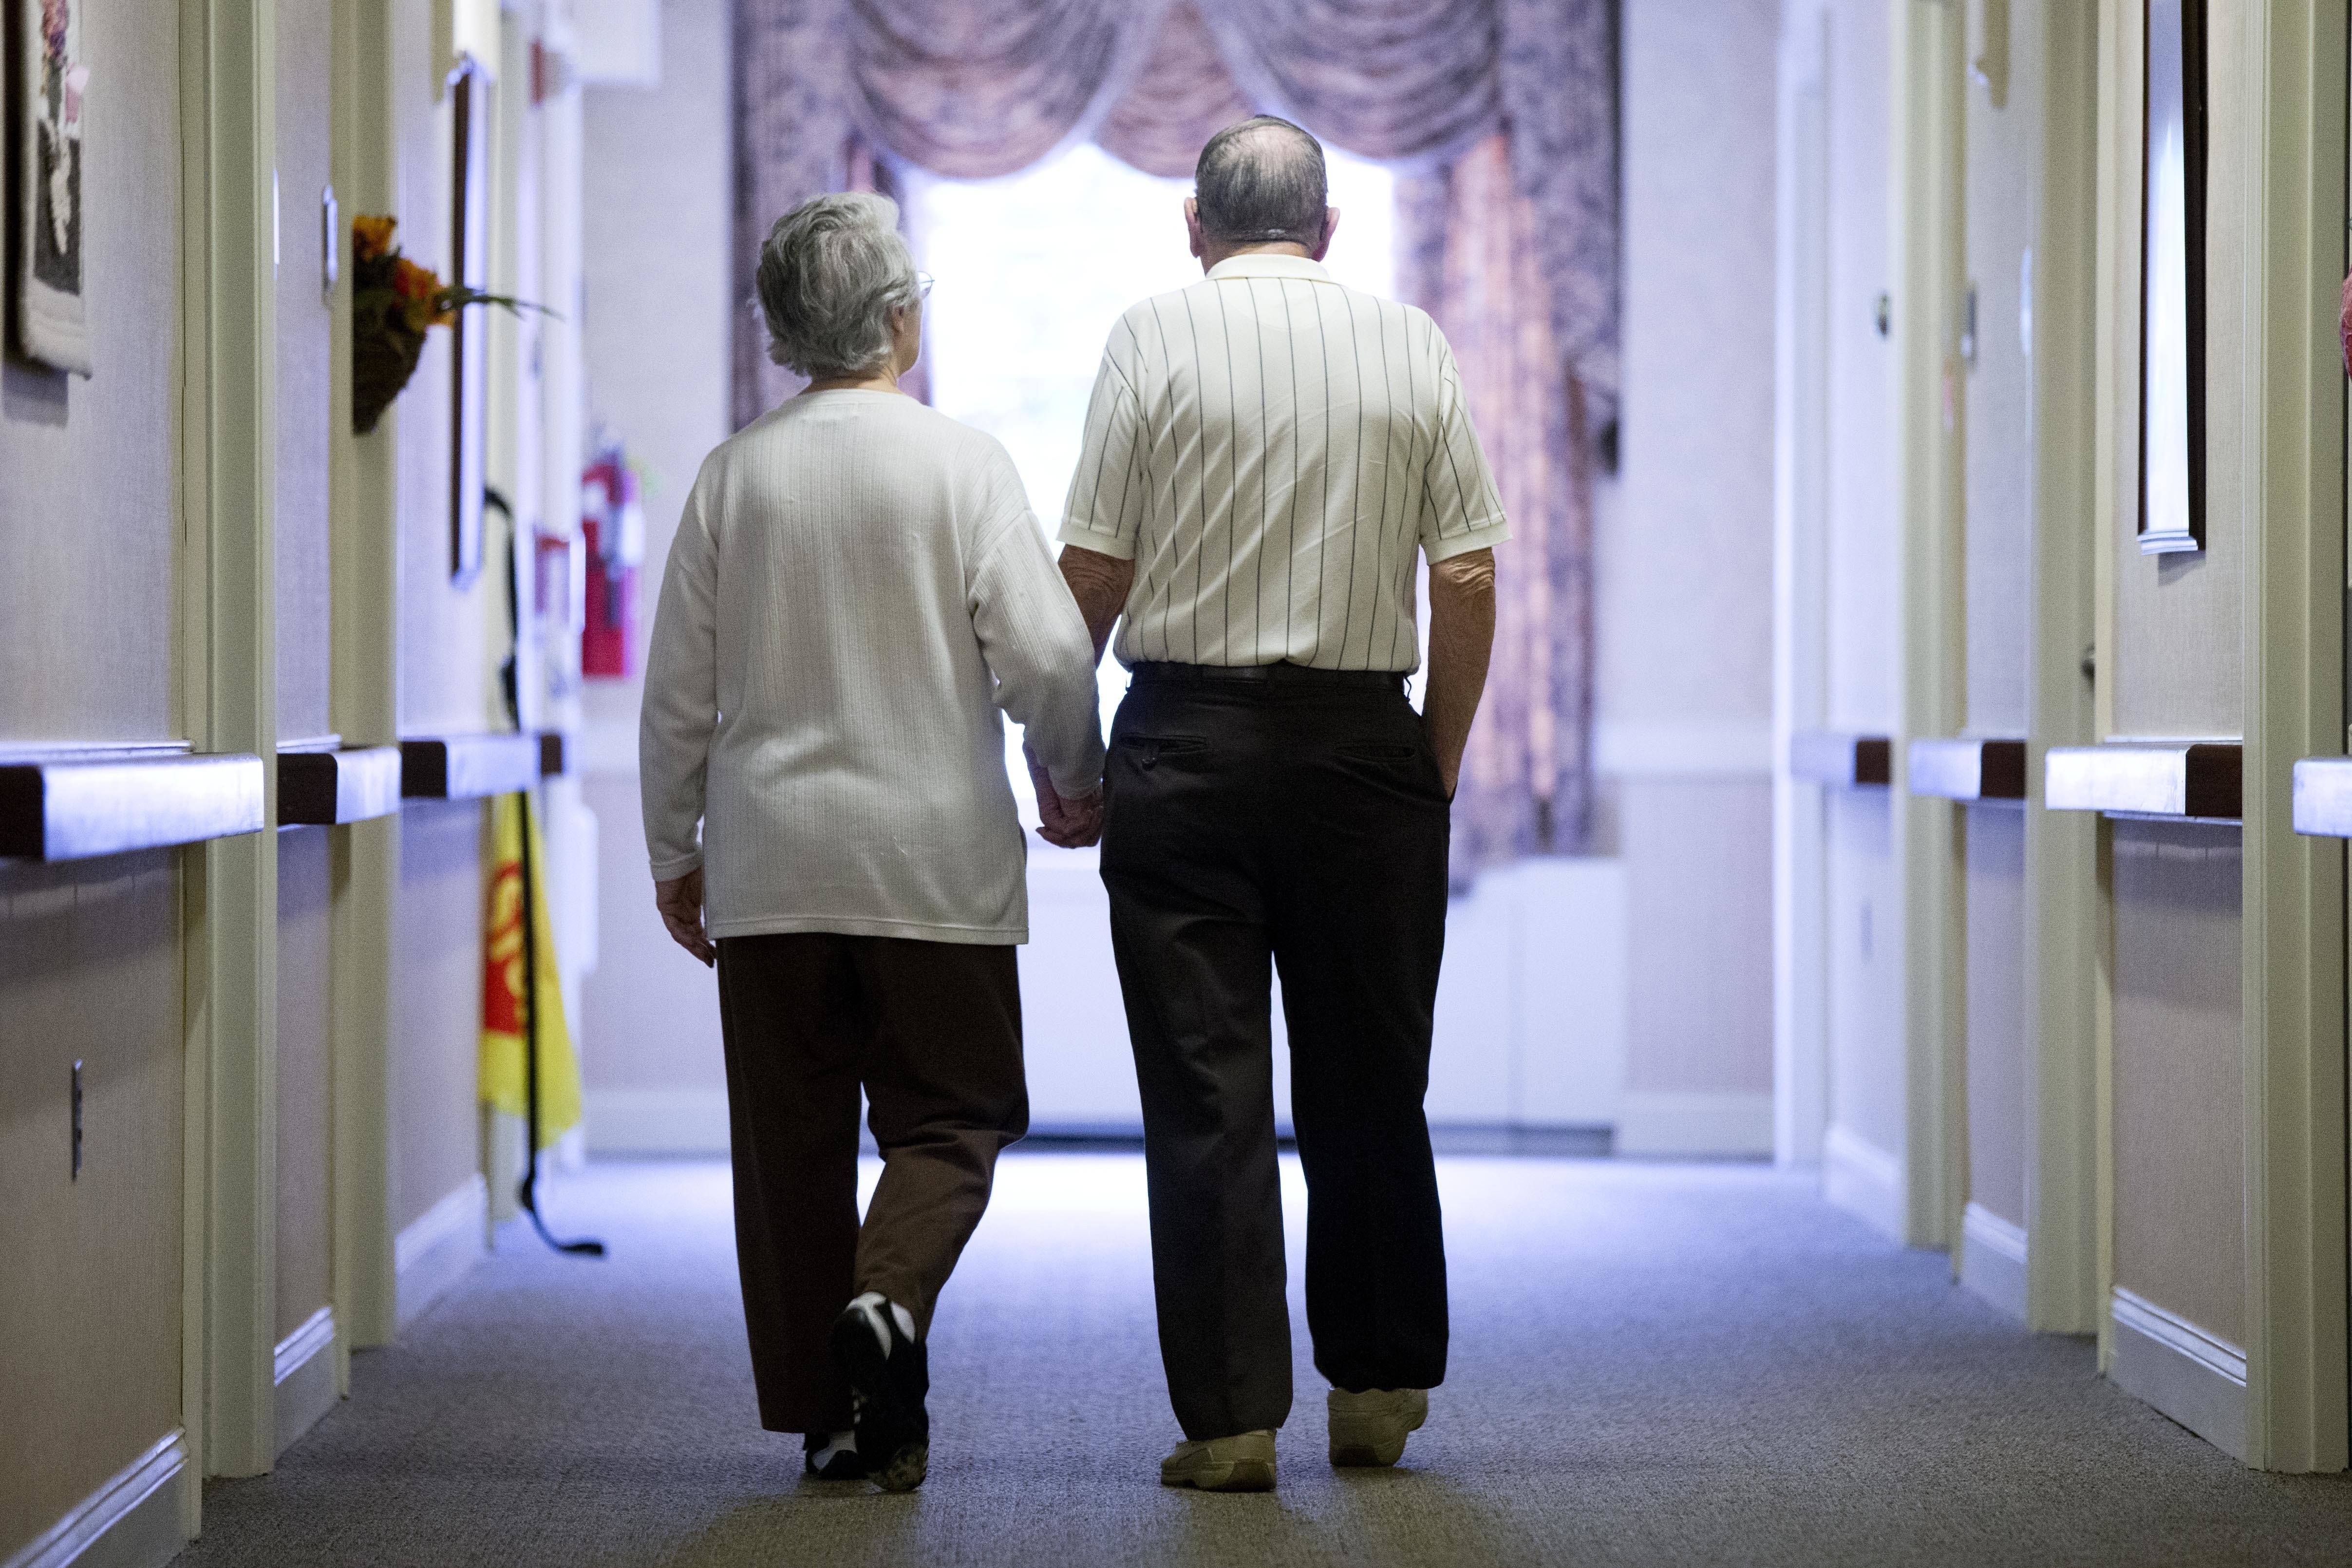 FILE - In this Nov. 6, 2015 file photo, an elderly couple walks down a hall of a nursing home in Easton, Pa. Research released on Tuesday, June 4, 2019 shows fatal falls have nearly tripled in older Americans in recent years, rising to more than 25,000 deaths yearly. (AP Photo/Matt Rourke, File)